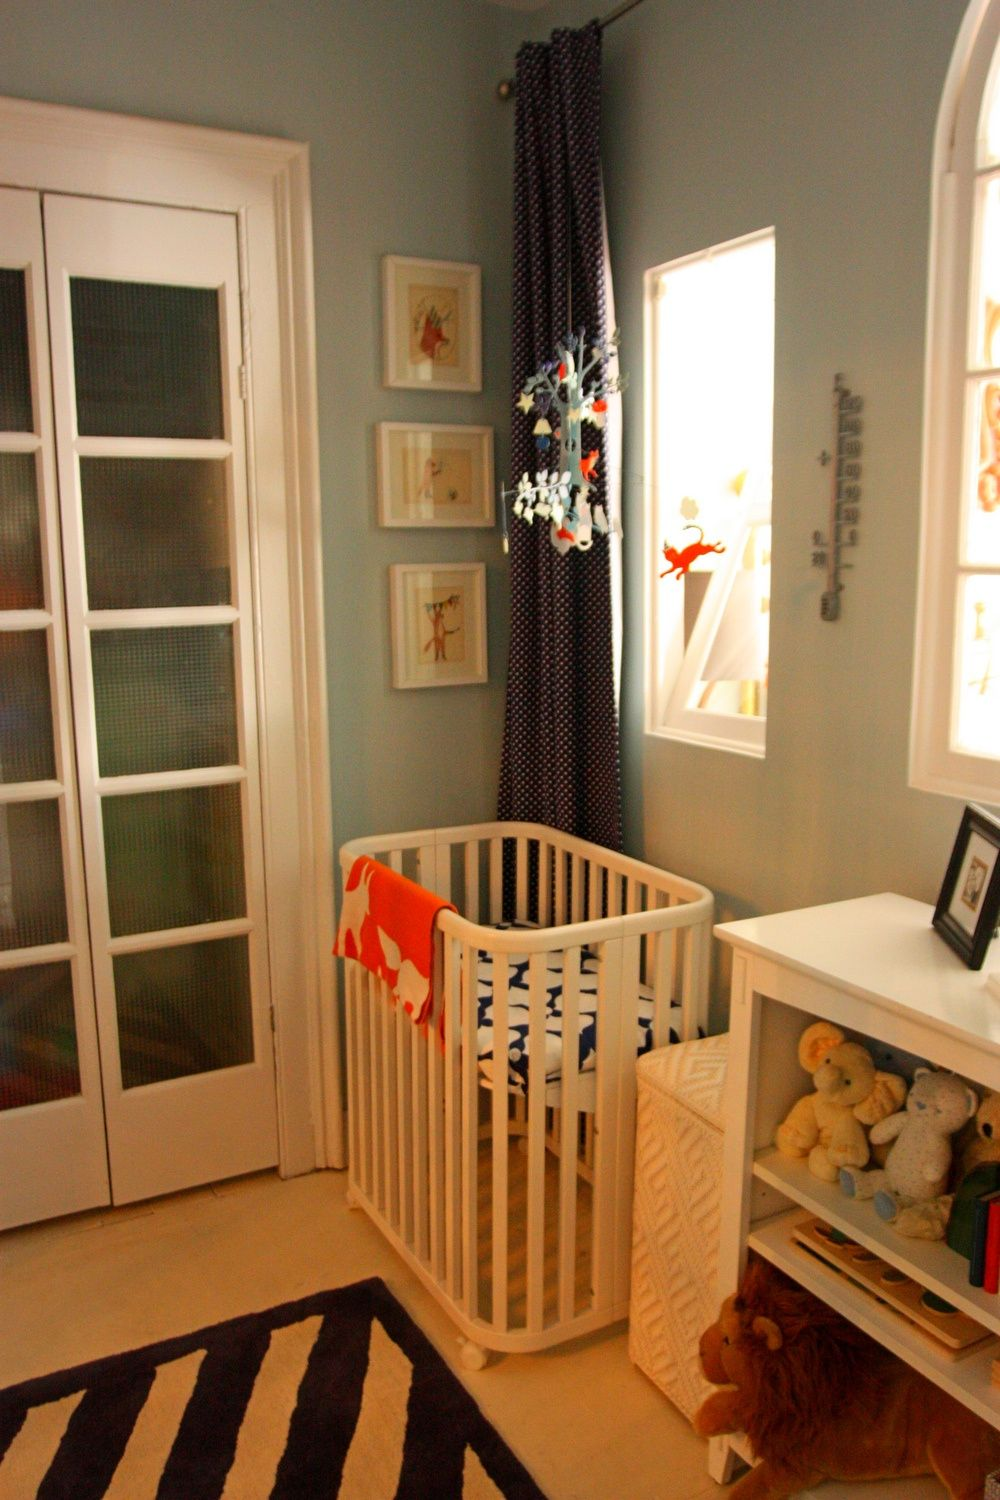 Small Baby Cribs Small Spaces - Best Interior Wall Paint Check more ...